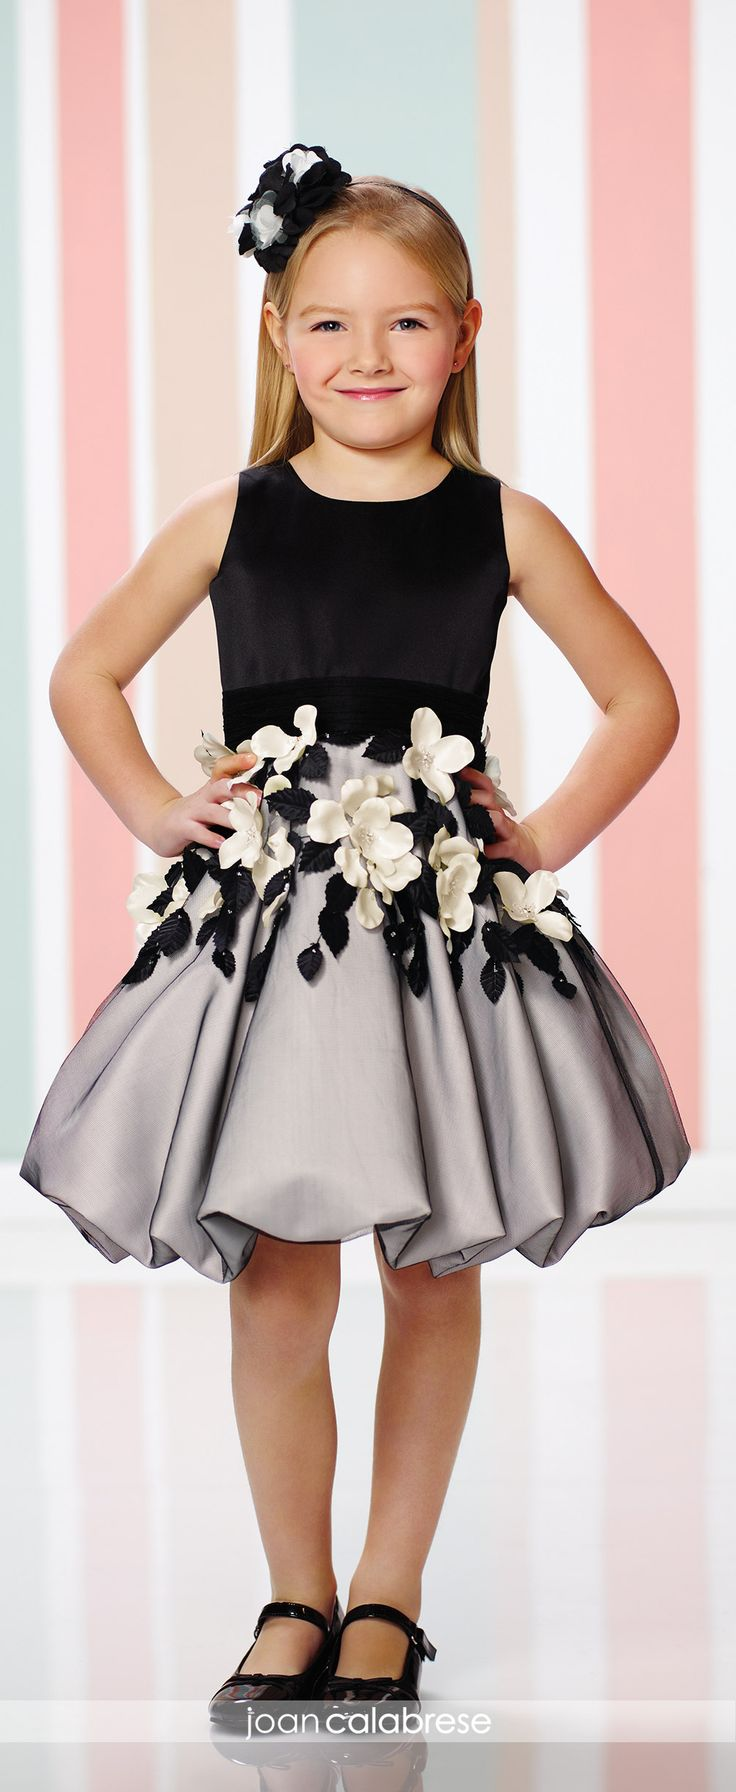 Joan Calabrese for Mon Cheri - 216321 - Sleeveless satin and tulle knee-length A-line dress with jewel neckline, satin bodice with ruched tulle waistband, large three-dimensional flowers and leaves adorn gathered tulle overlay bubble skirt.  Sizes: 2 – 14  Color: Black/Ivory